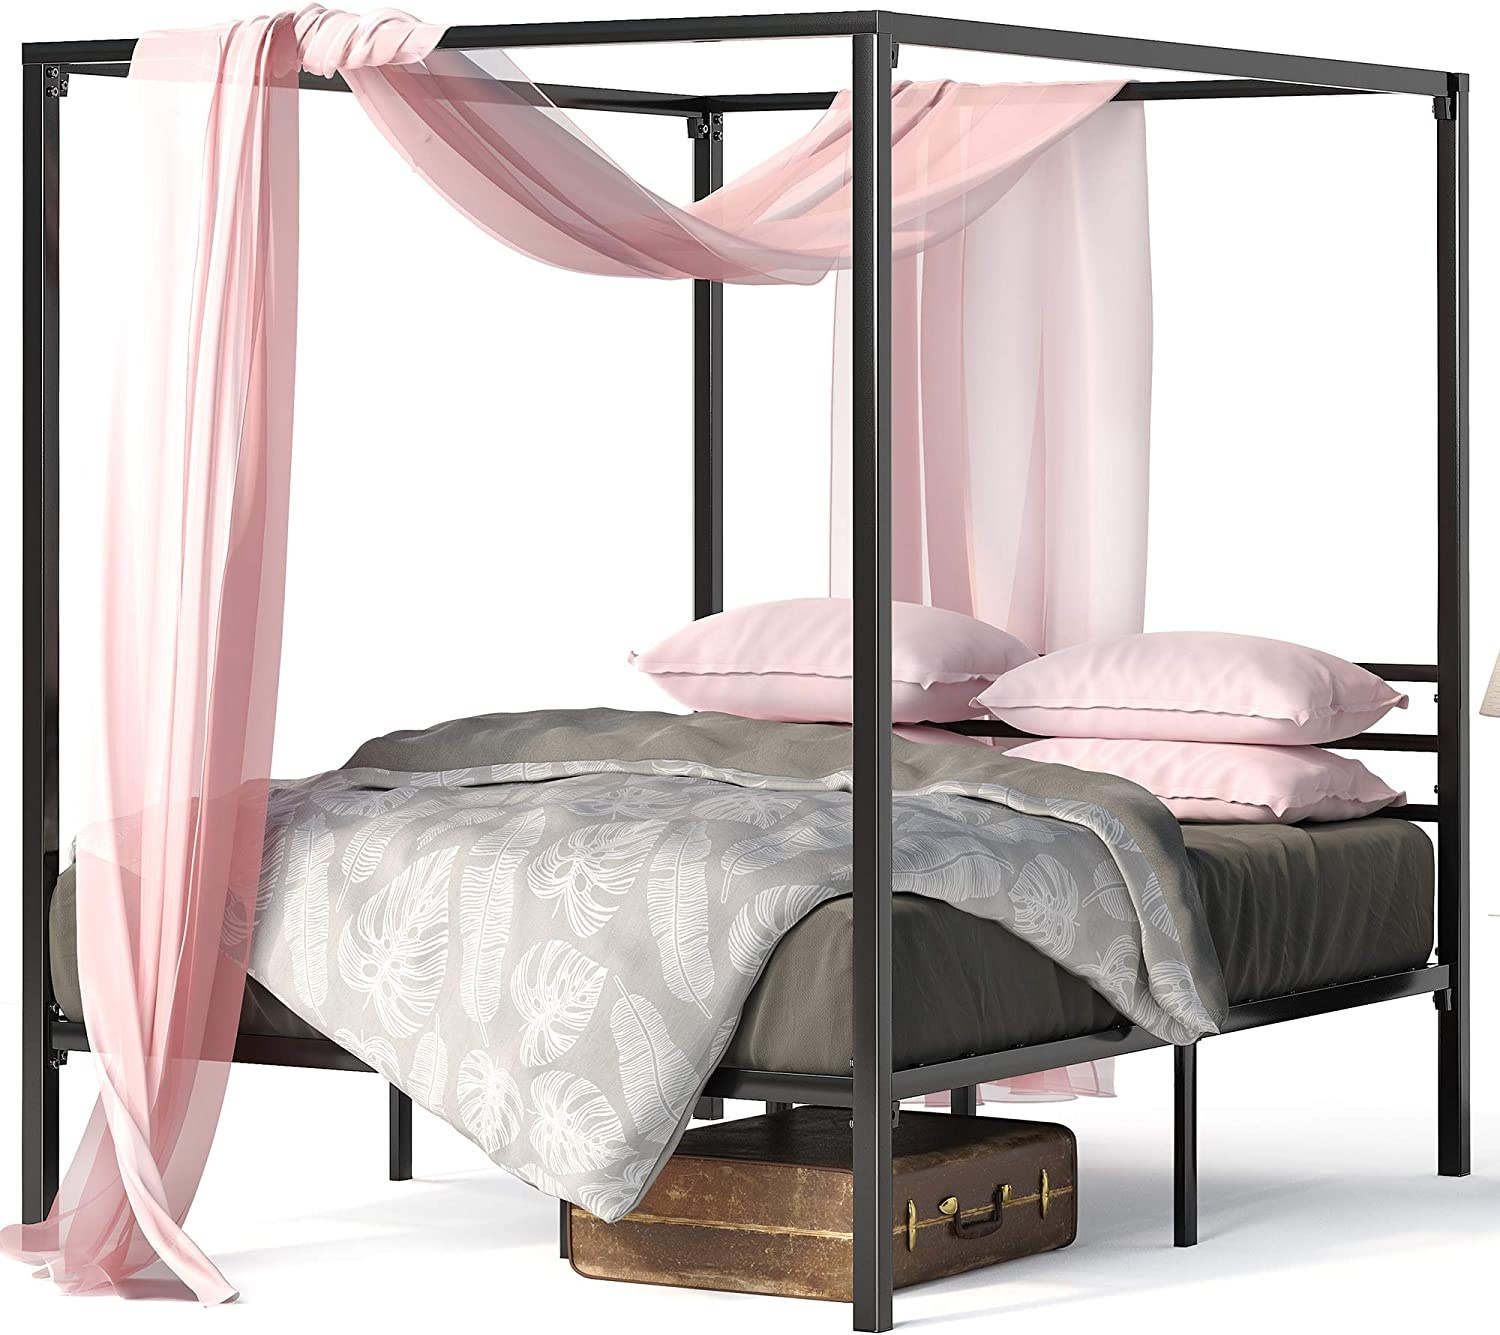 Metal Framed Canopy Four Poster Platform Bed Frame Strong Steel Mattress Support No Box Spring Needed Full Frame Only Wish